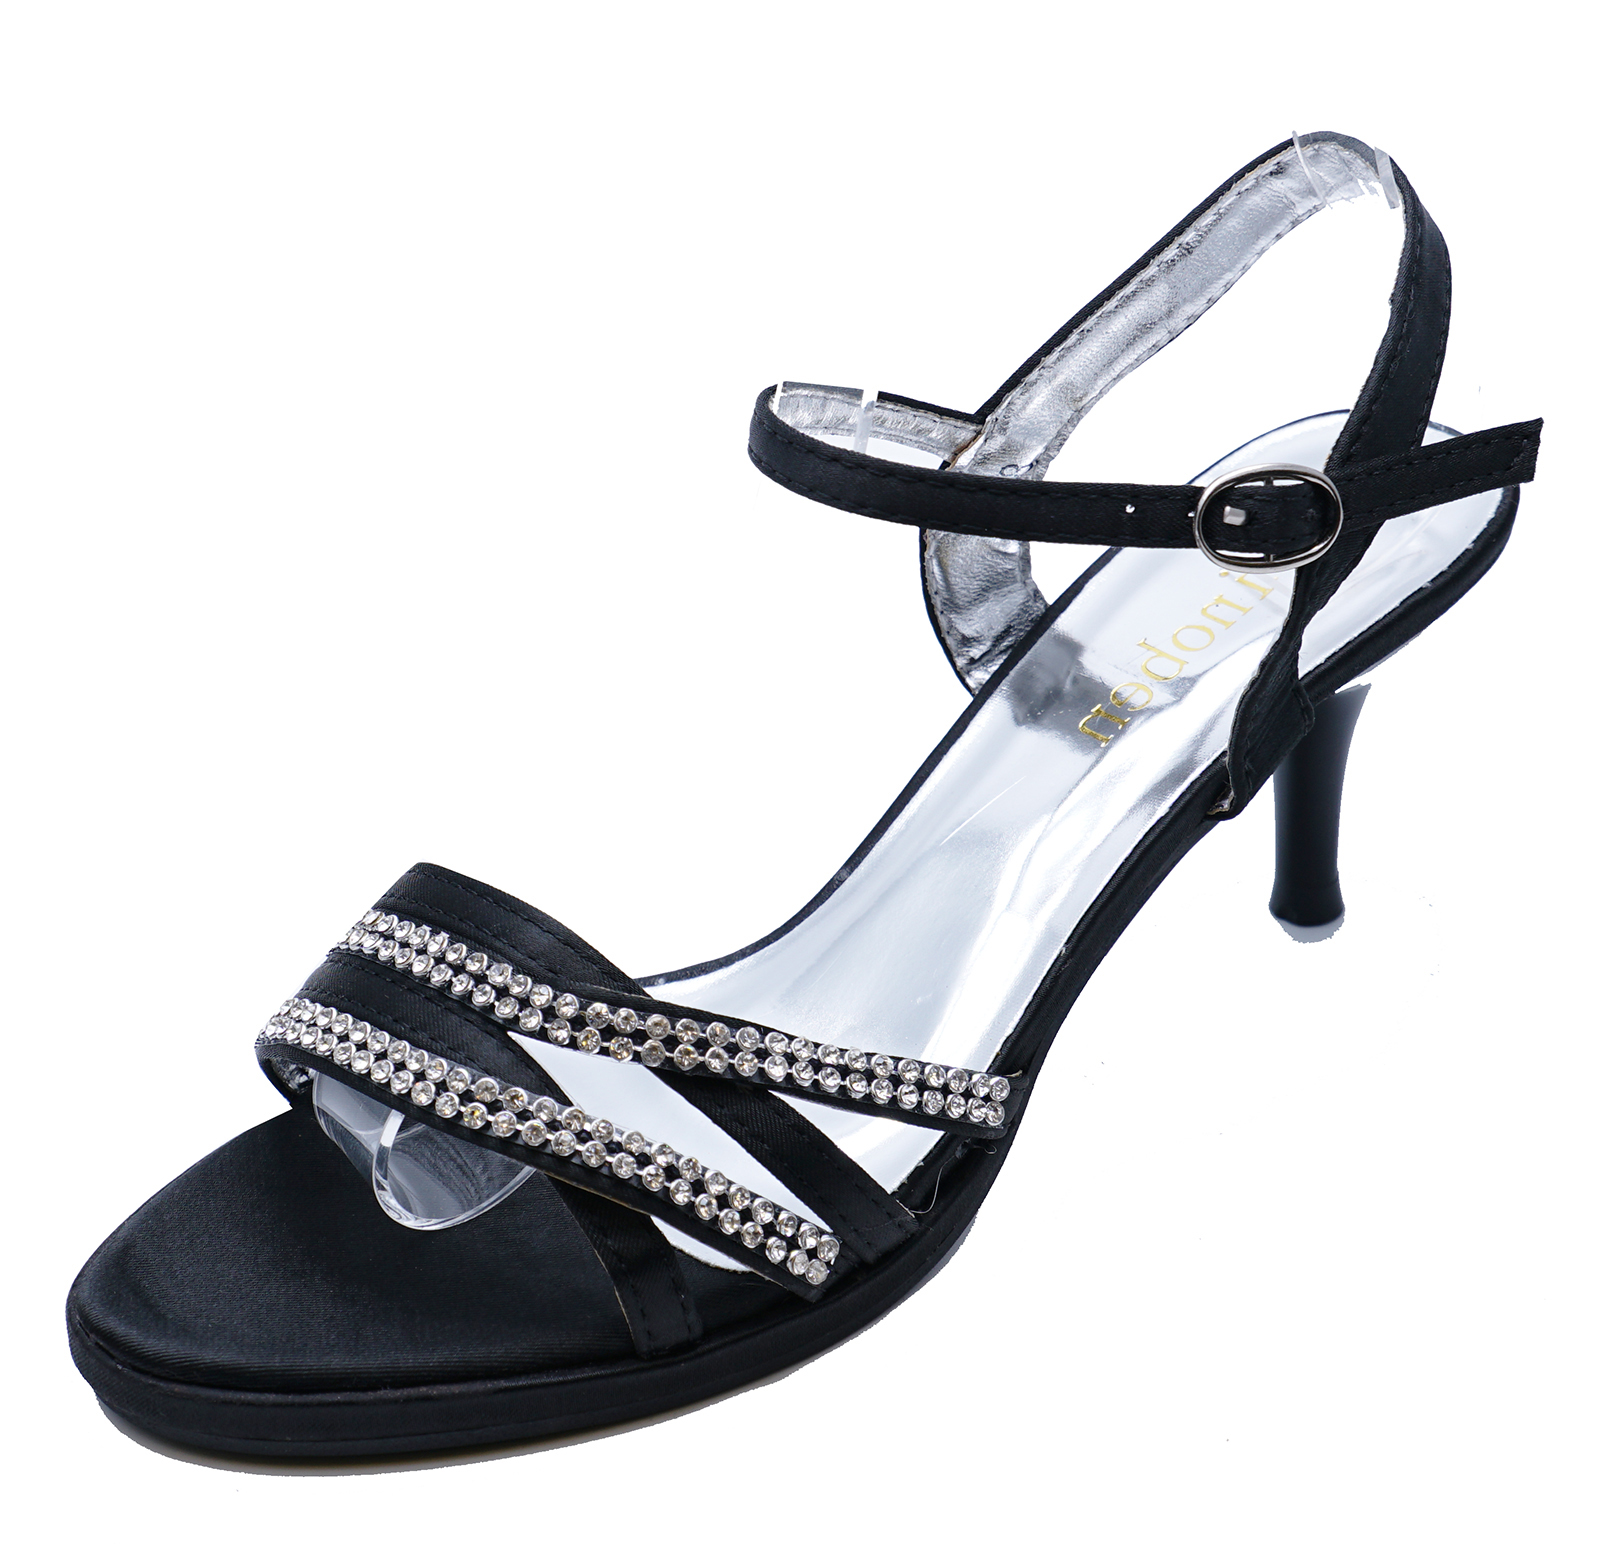 438da693c5c Details about WOMENS BLACK EVENING WEDDING DIAMANTE SANDALS BRIDESMAID PROM  SHOES SIZES 3-8